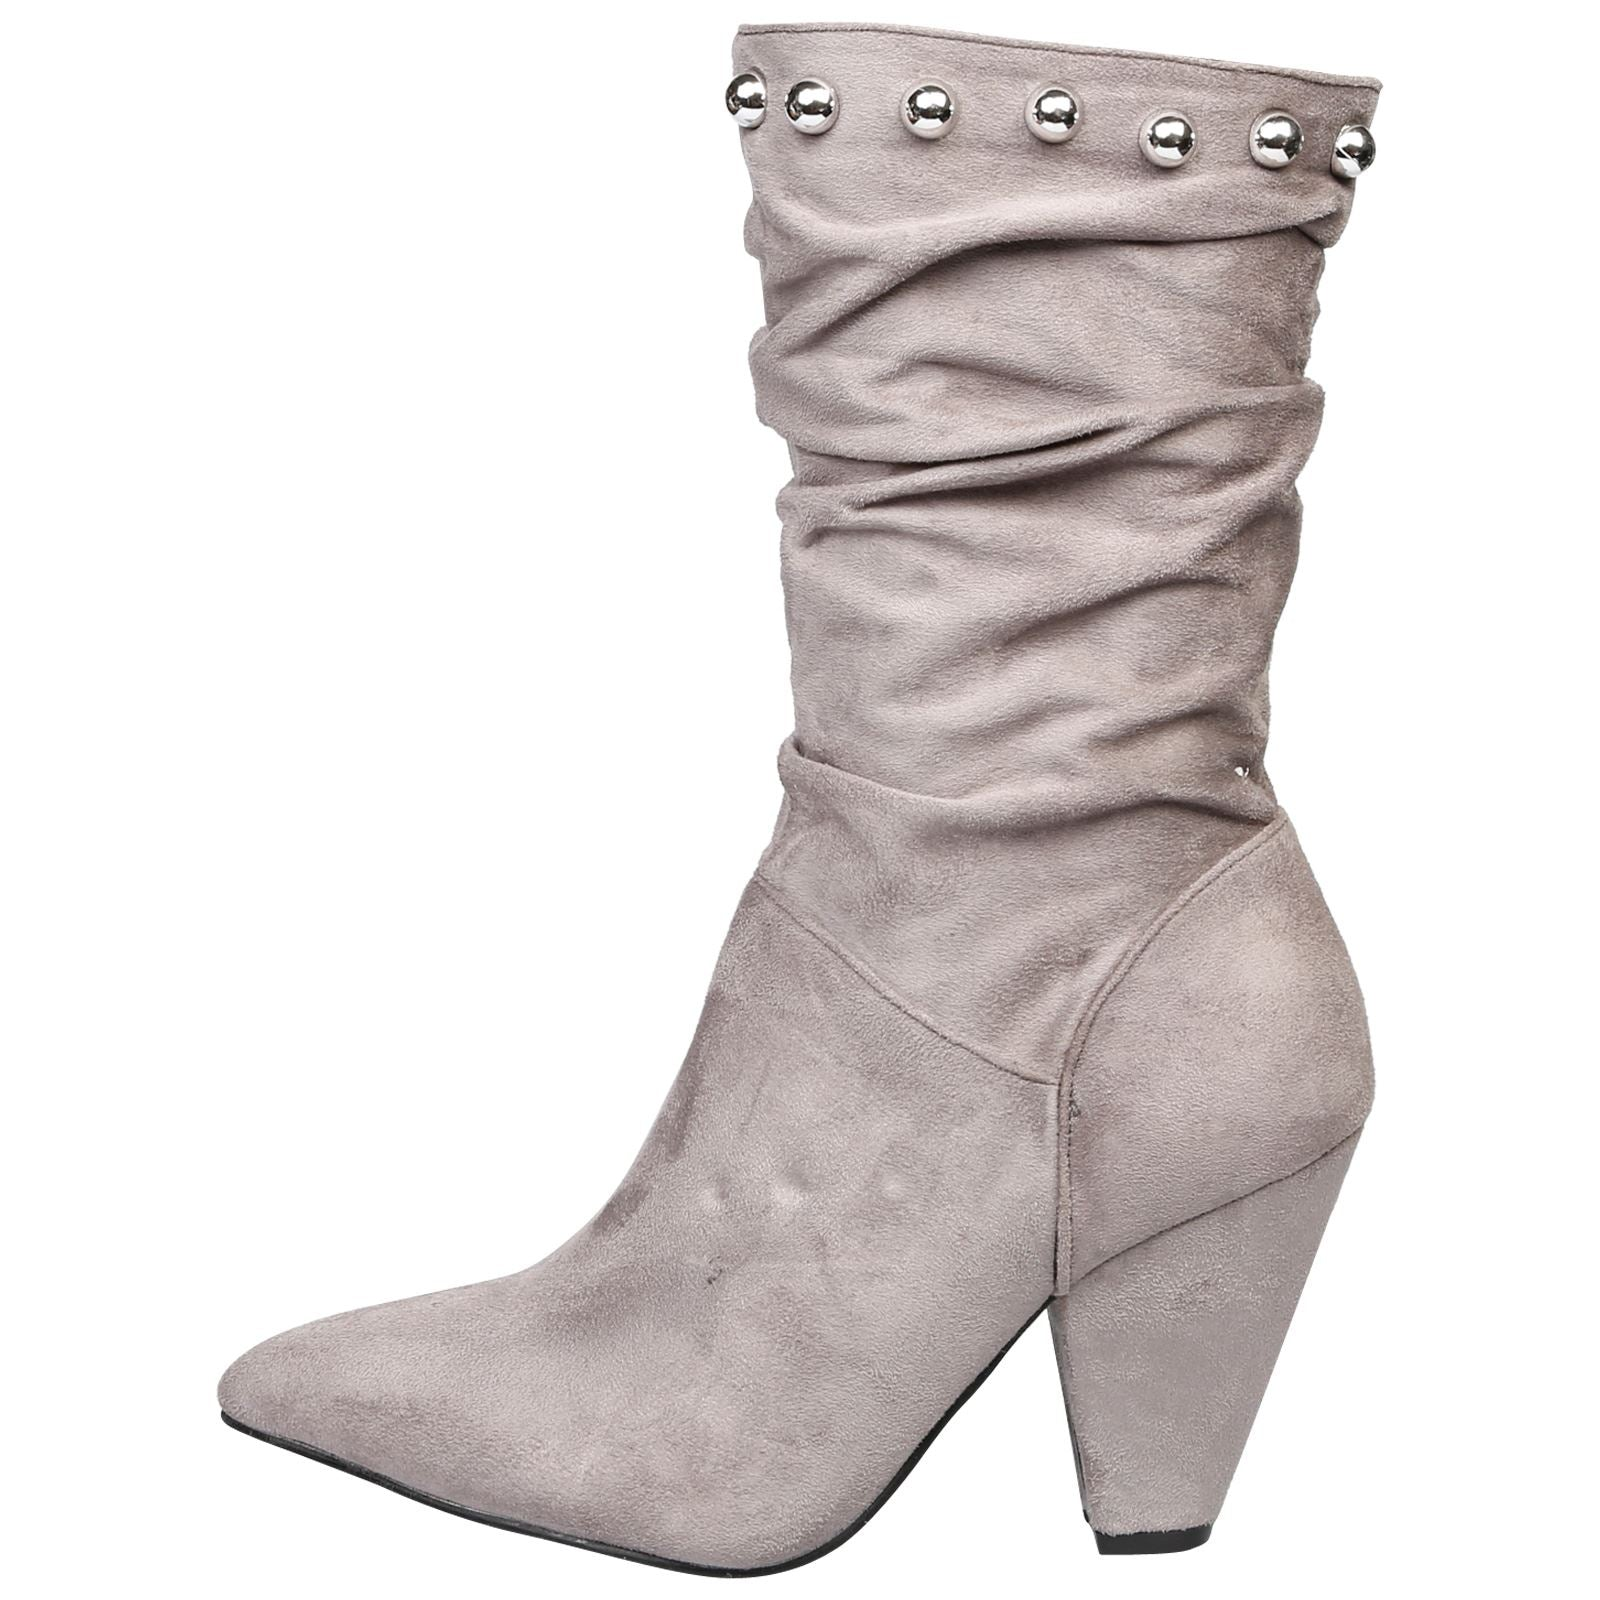 Analia Studded Slouch Boots in Grey - Feet First Fashion